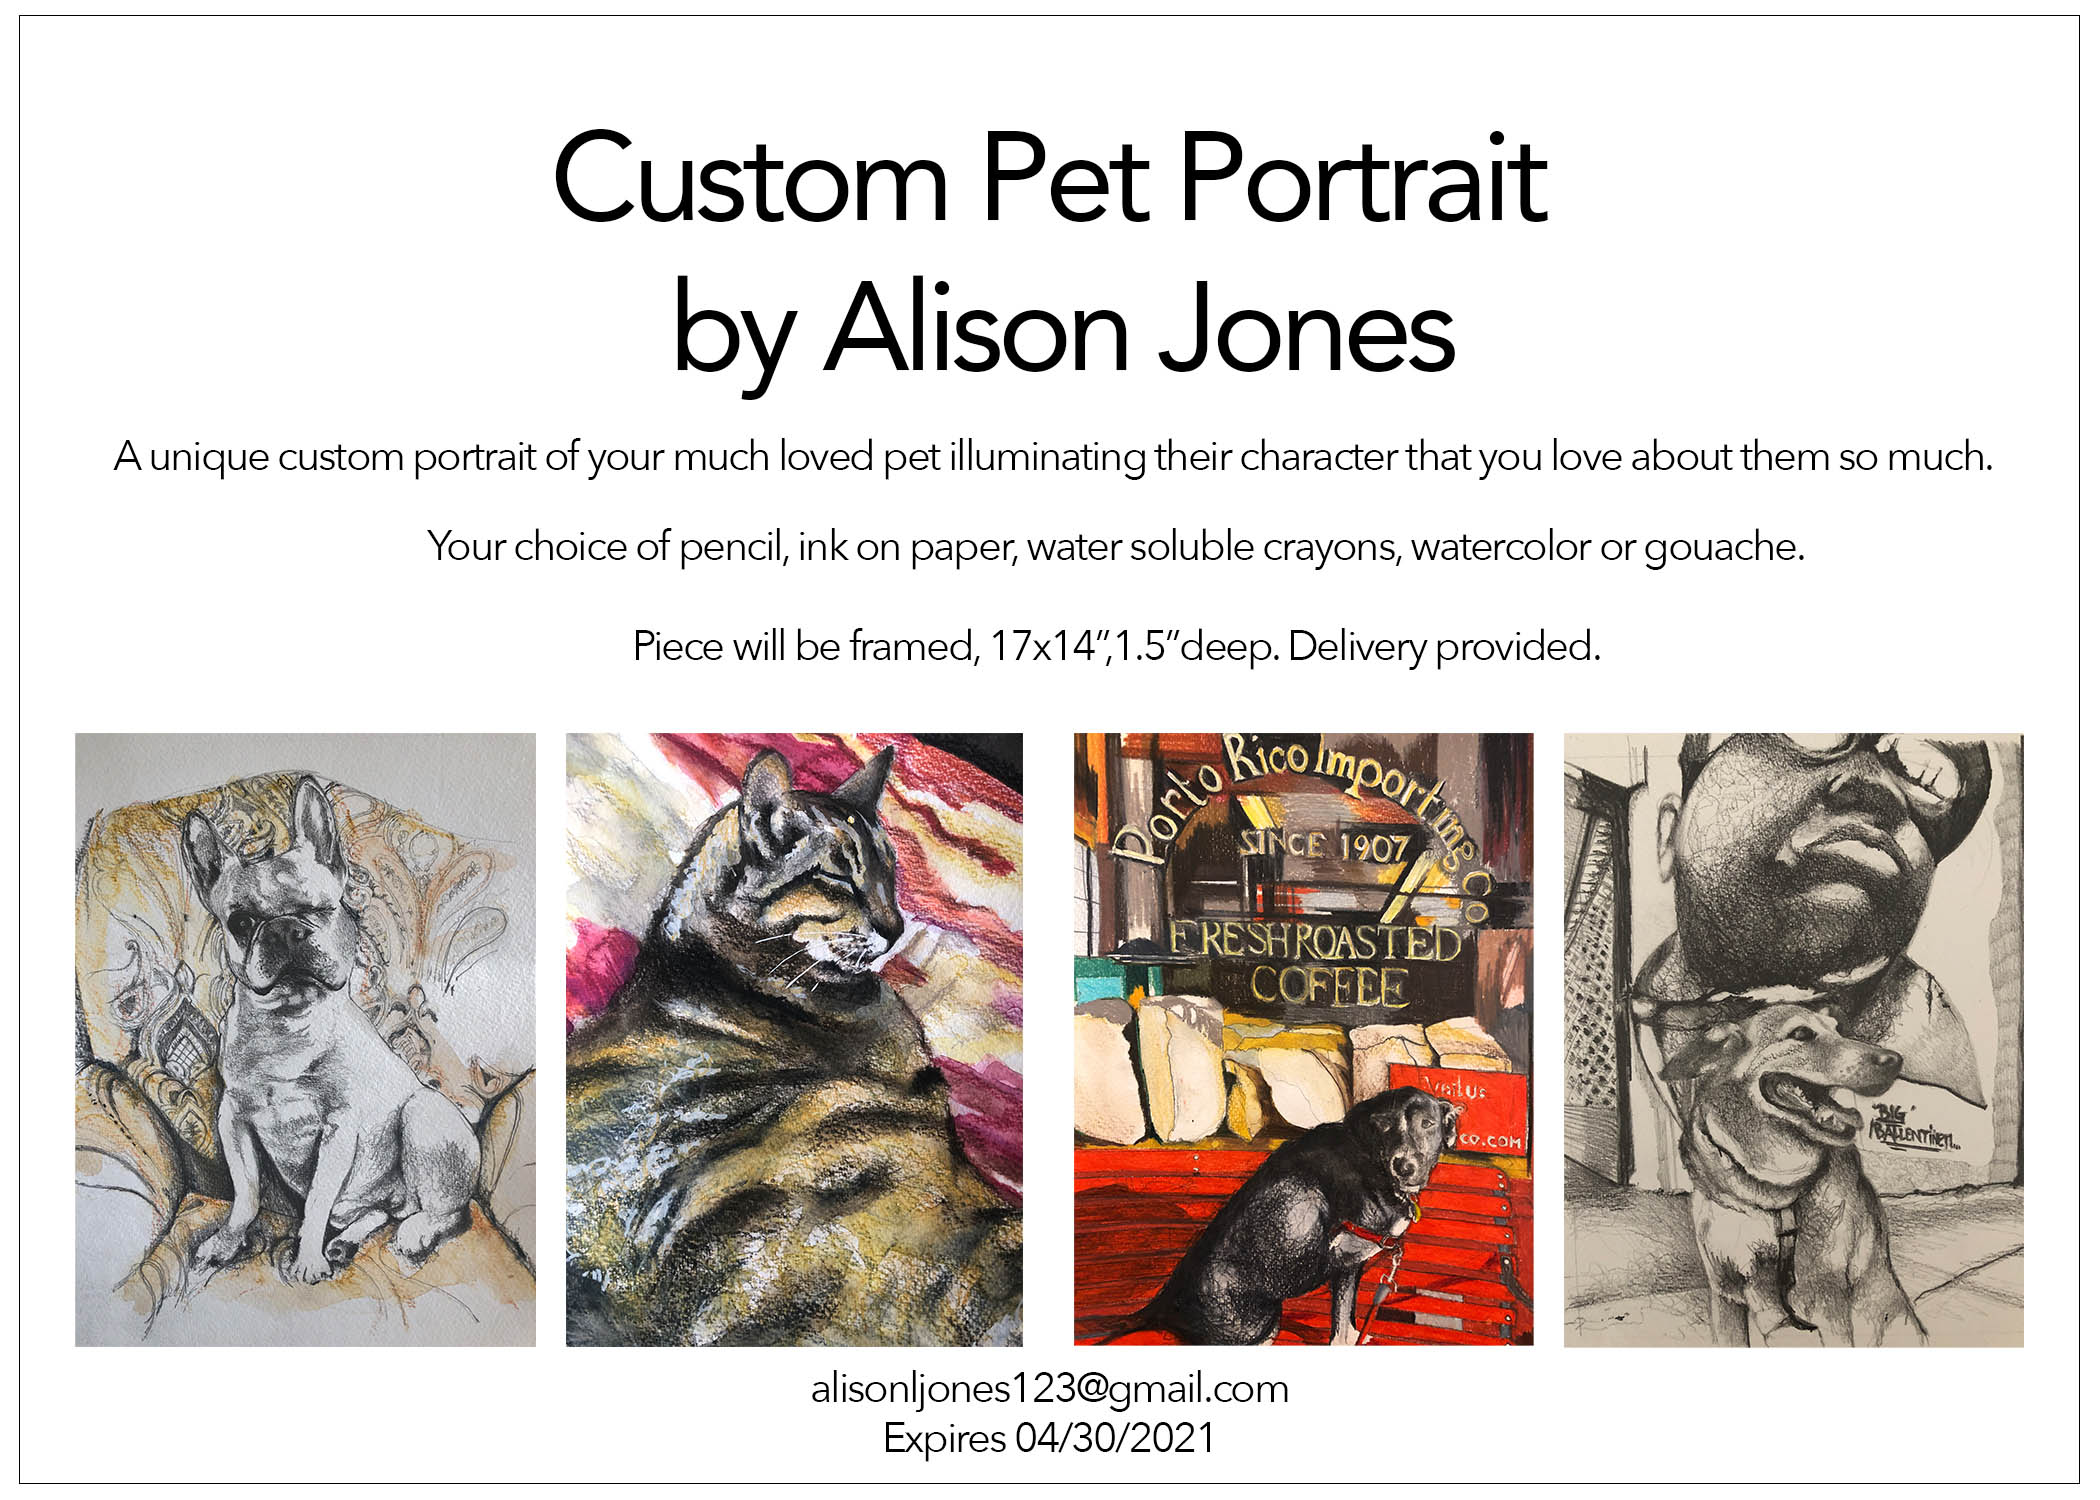 Alison Jones, Custom Pet Portrait